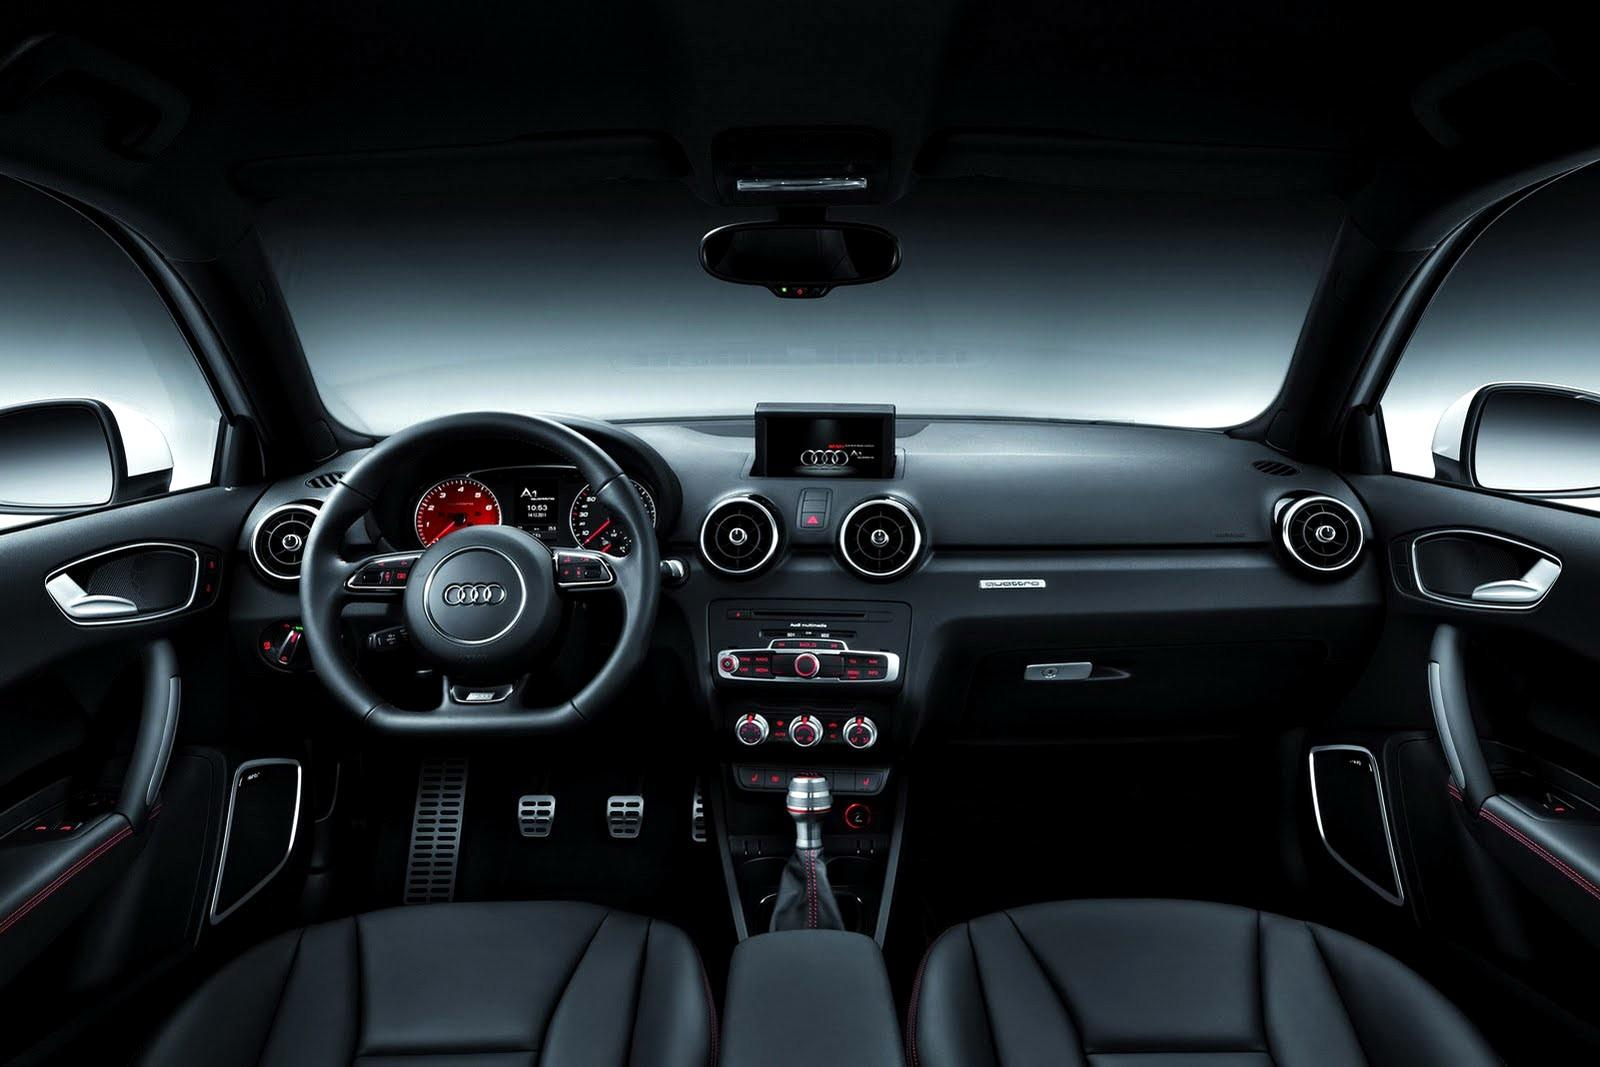 1600x1067 - Audi A1 Wallpapers 16